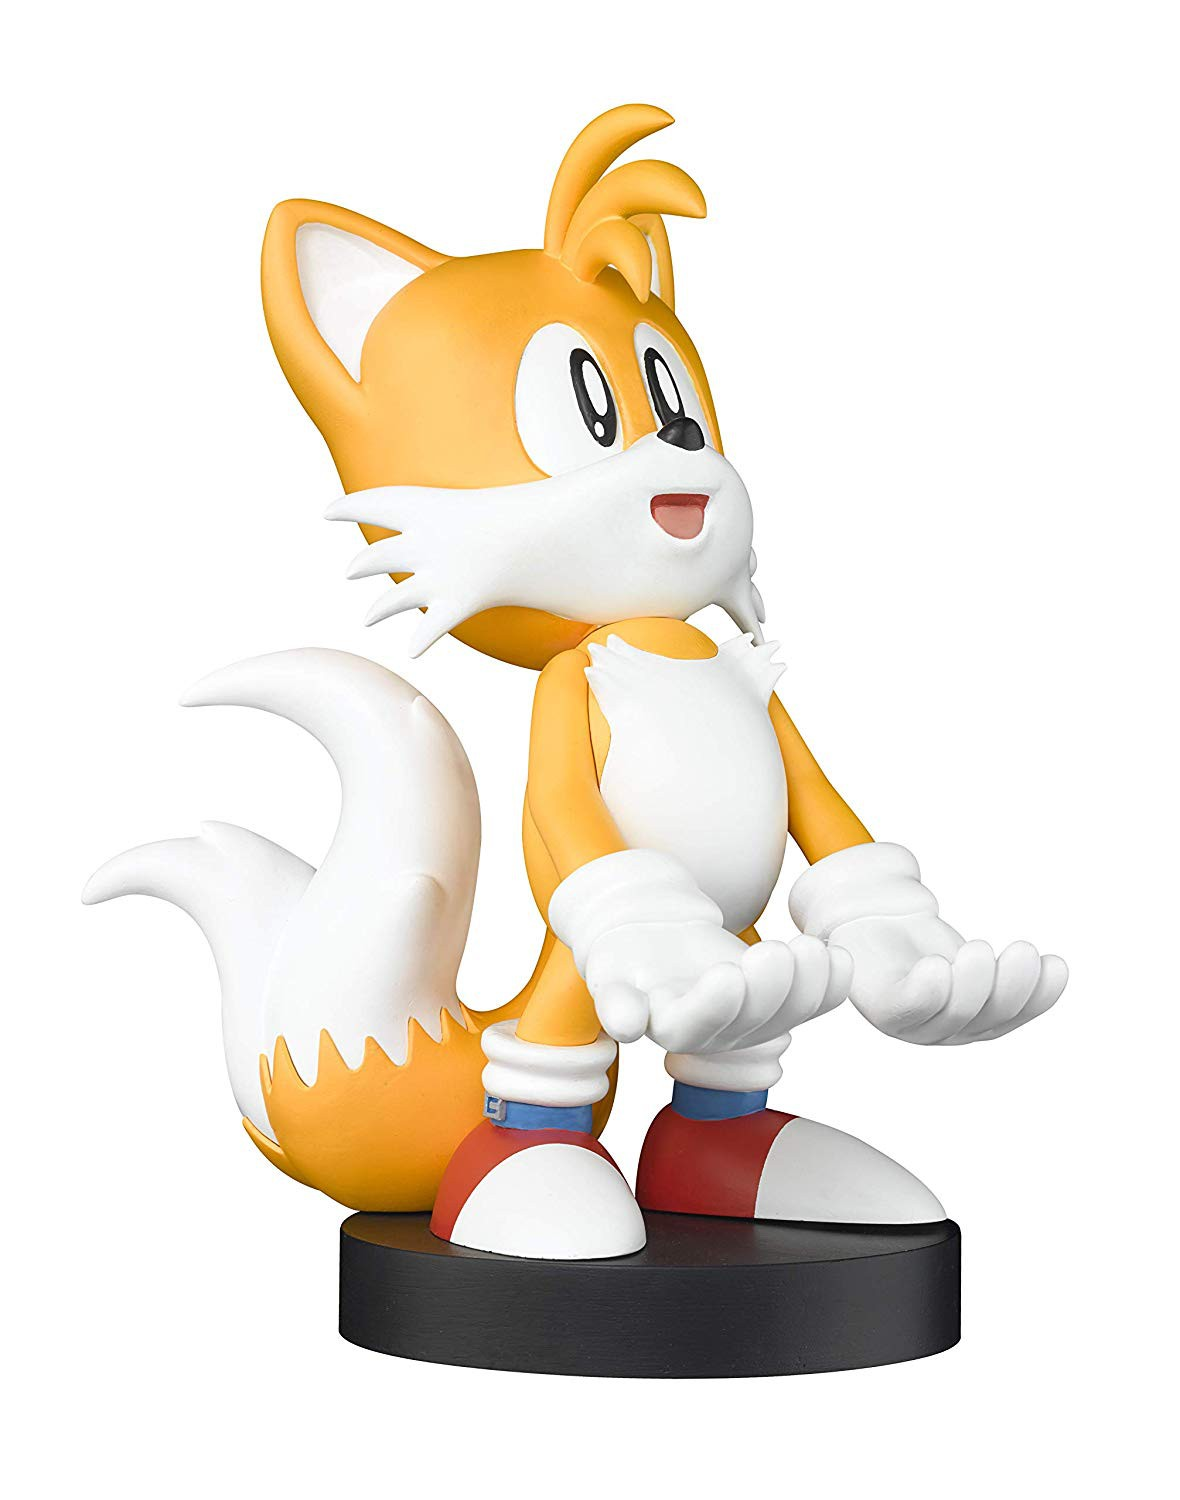 Sonic the Hedgehog - Tails Cable Guy stand